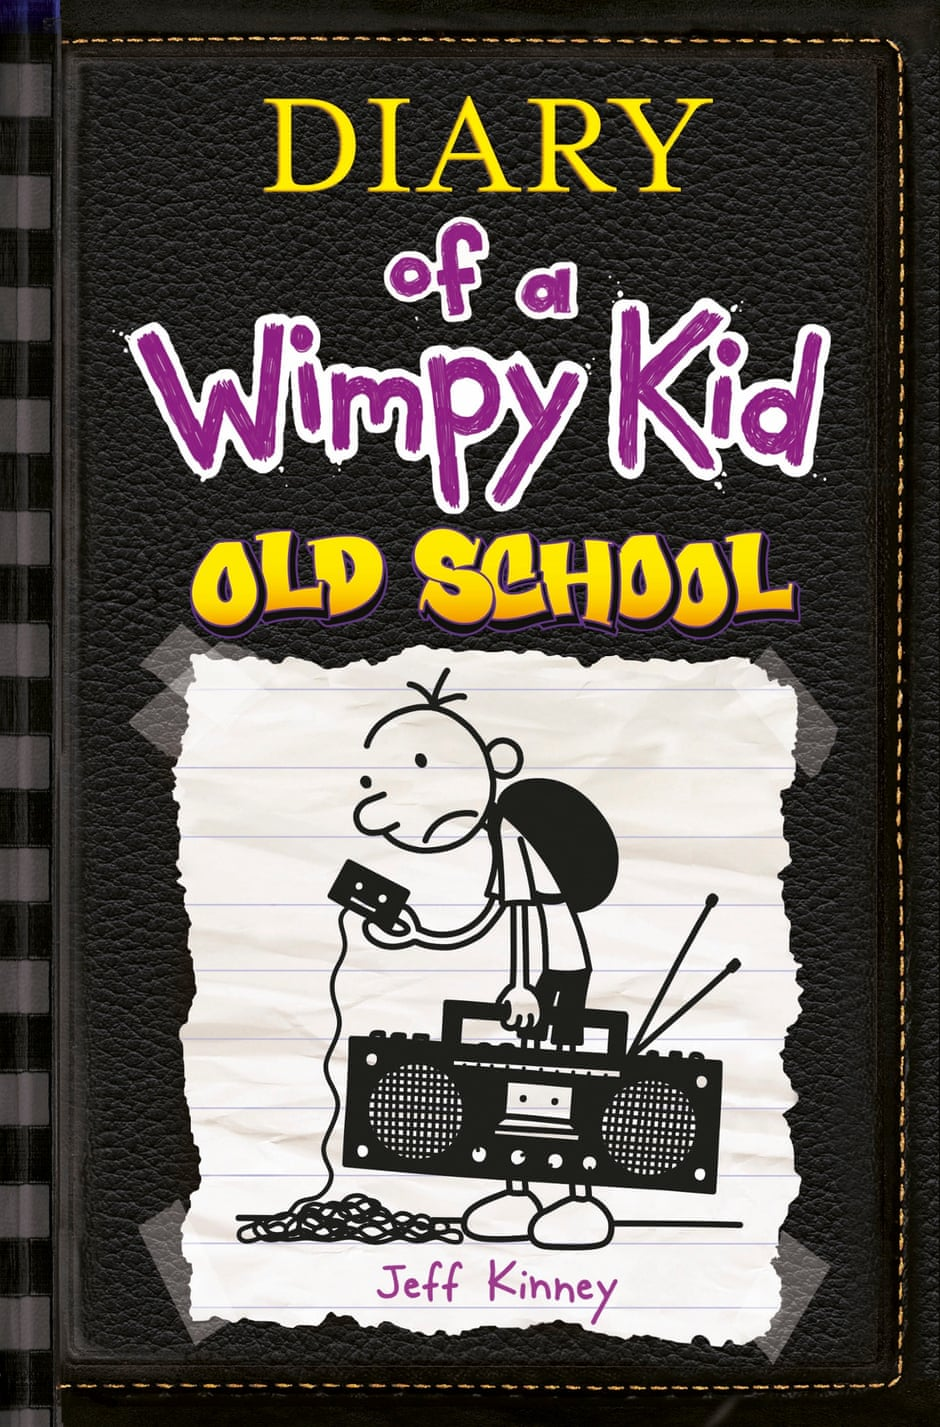 WImpy Kid old school